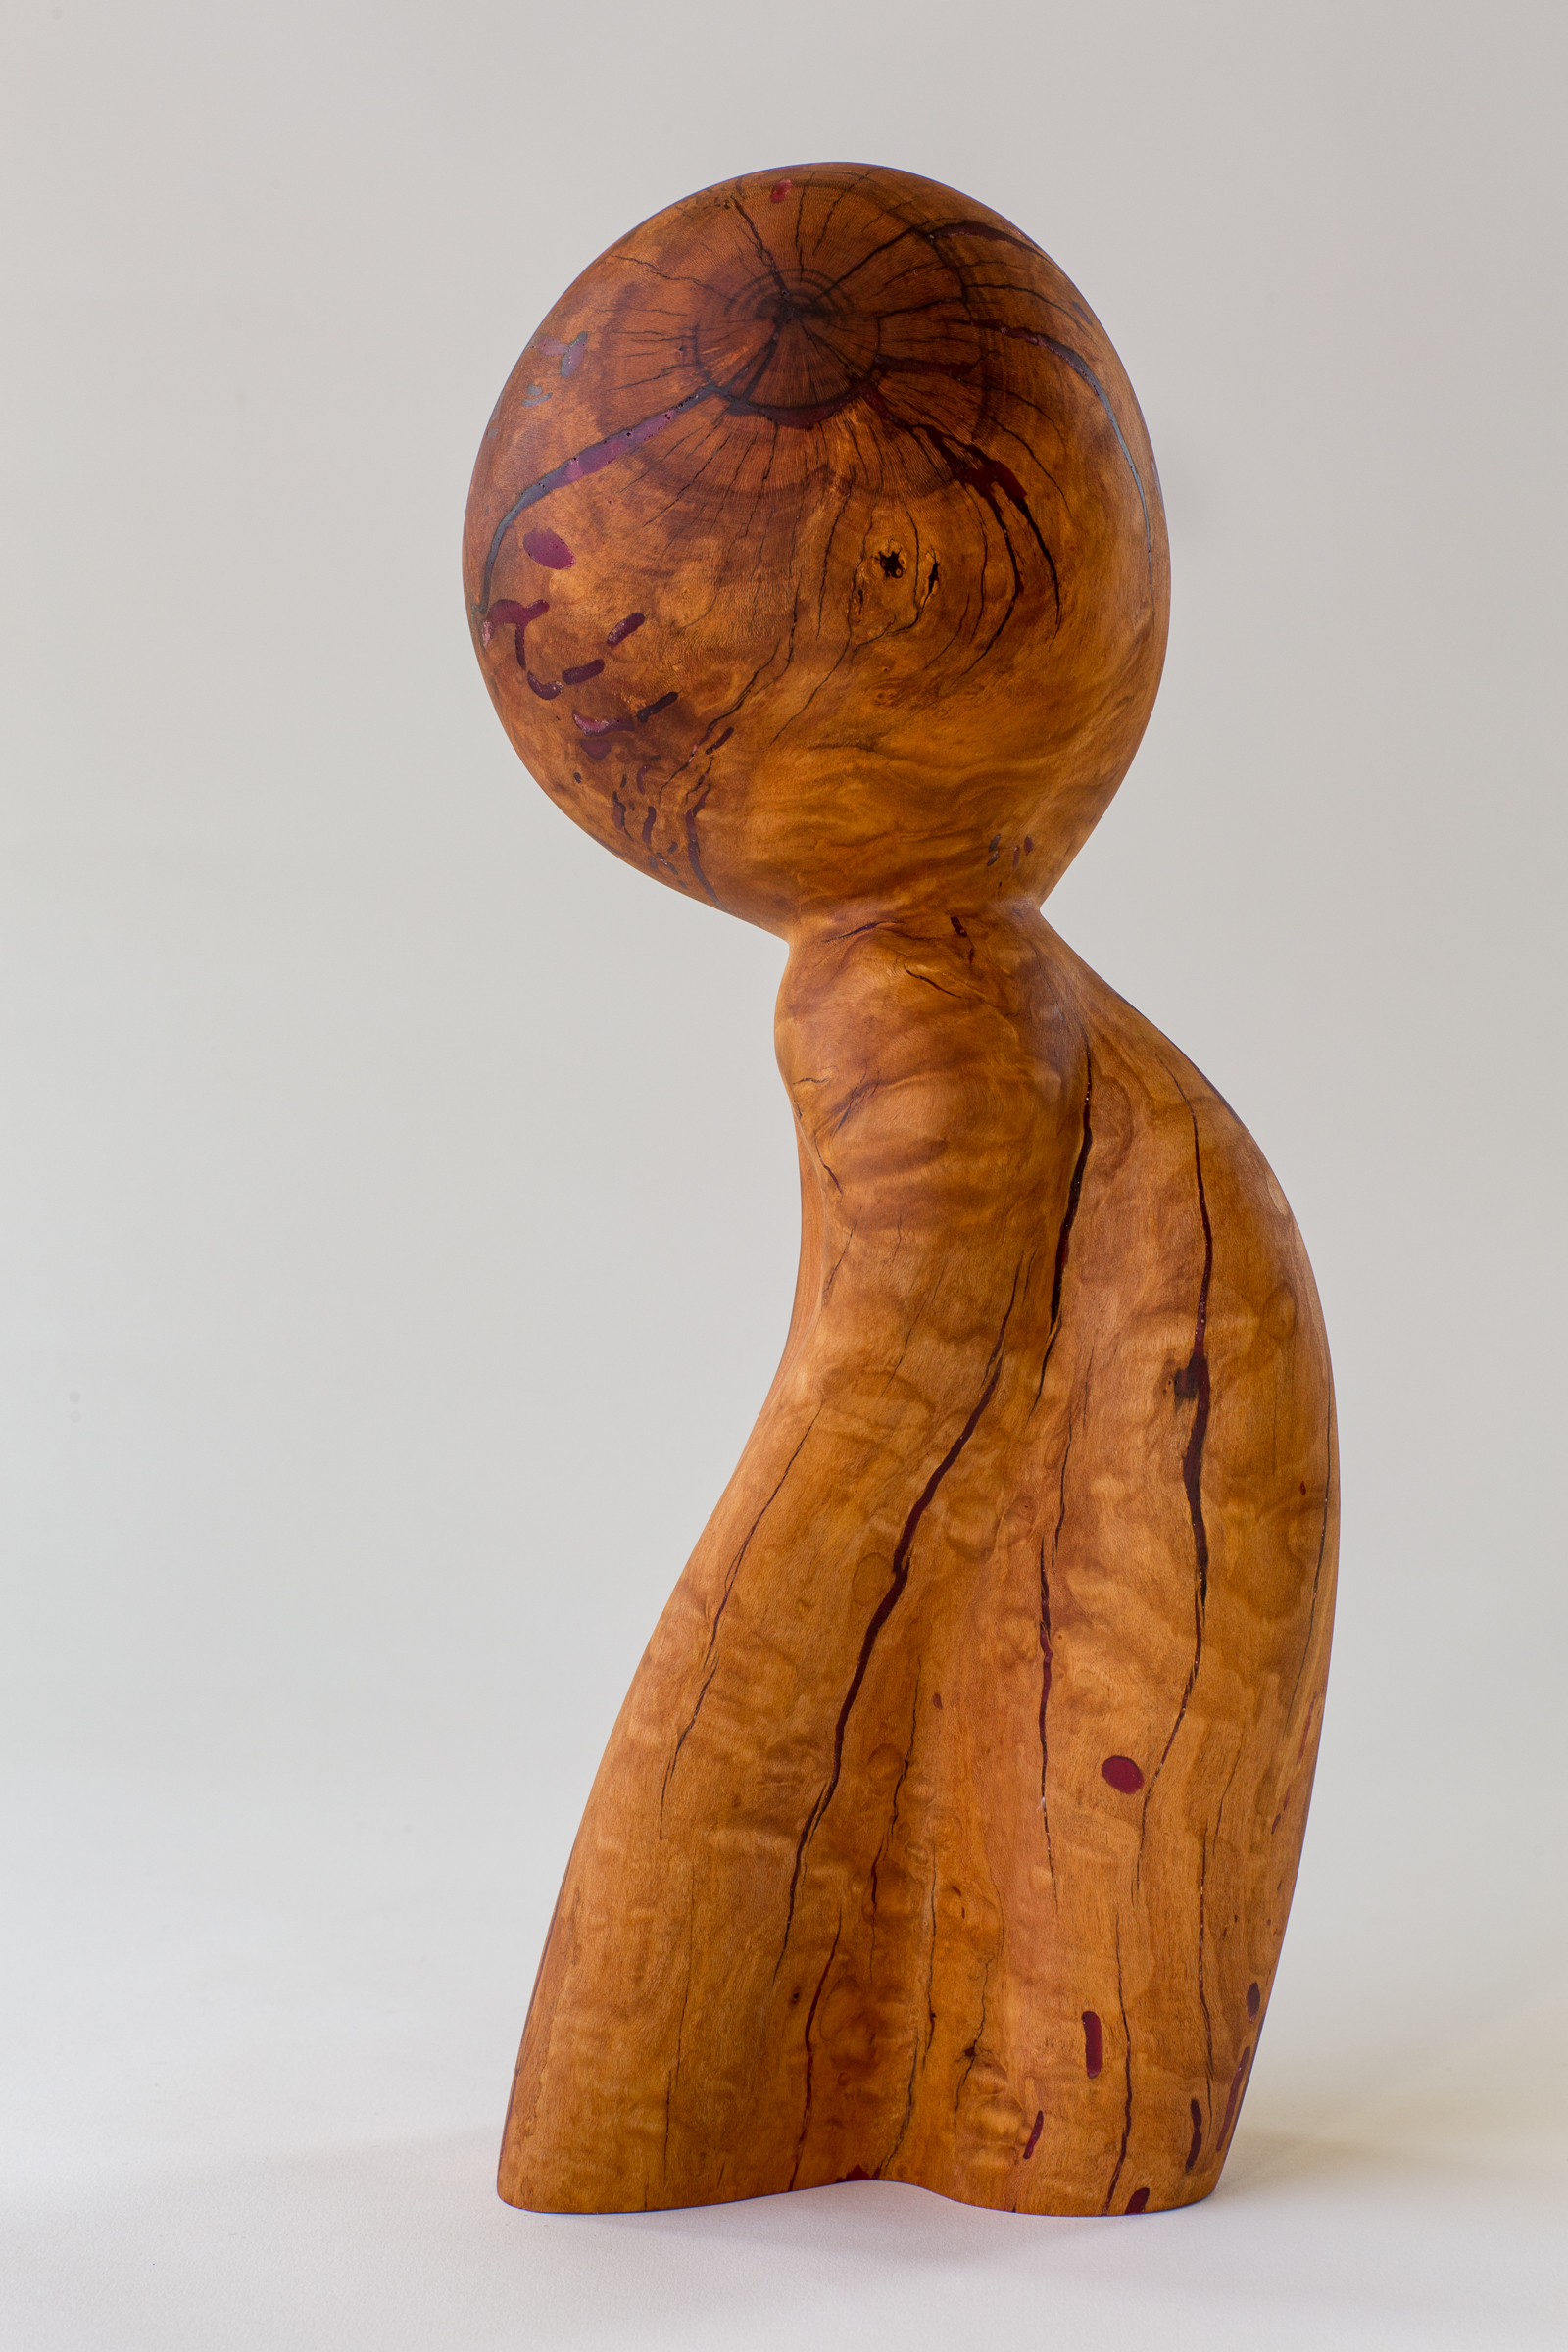 Child - Plum Wood 14 in tall